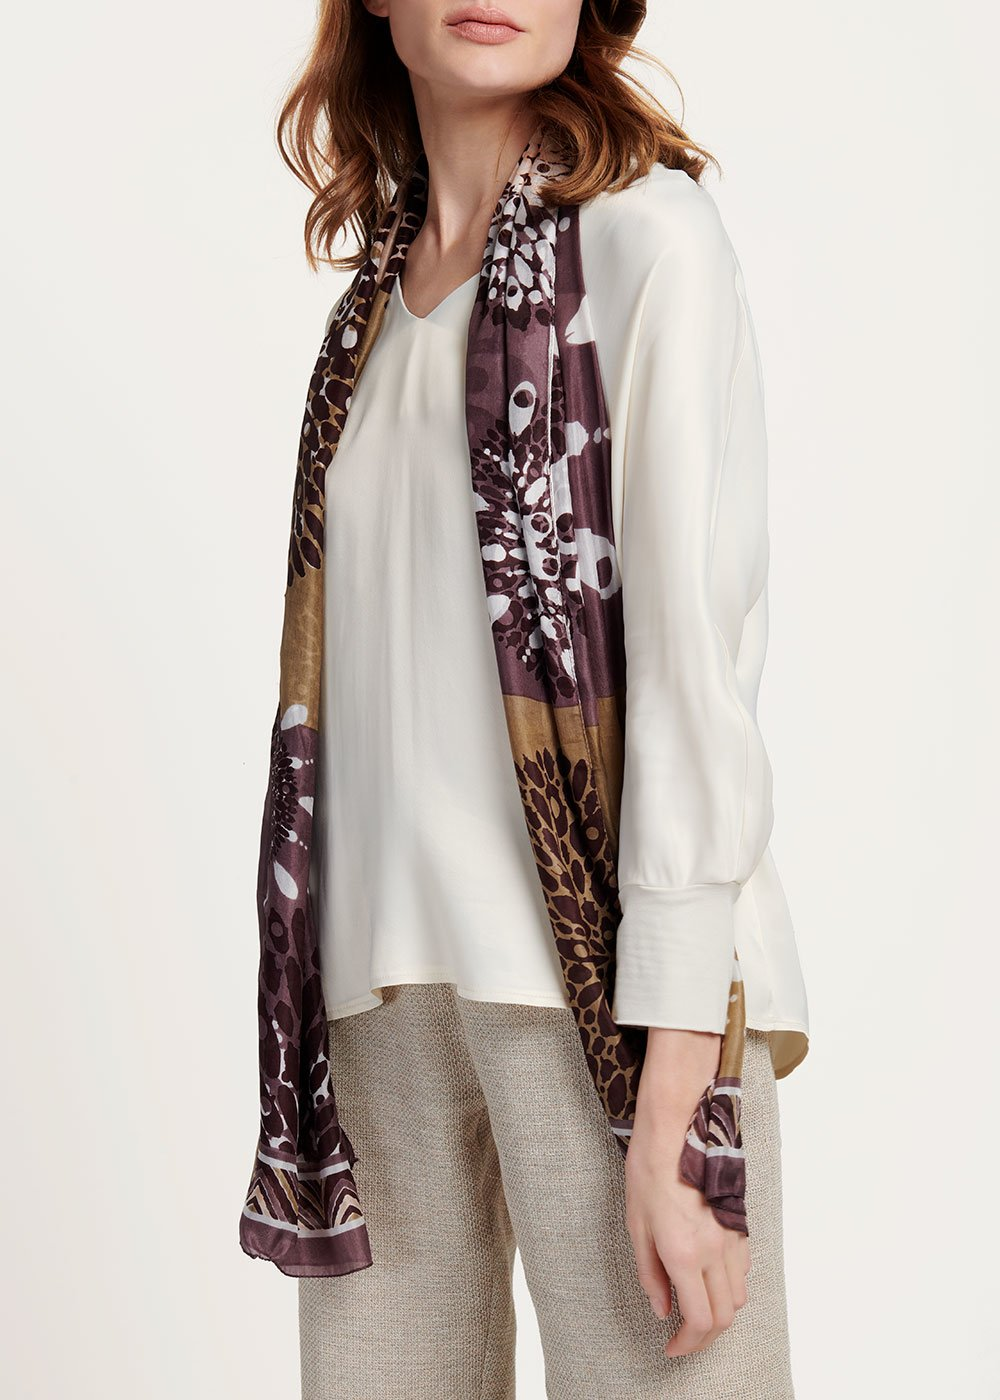 Sail scarf with flower print